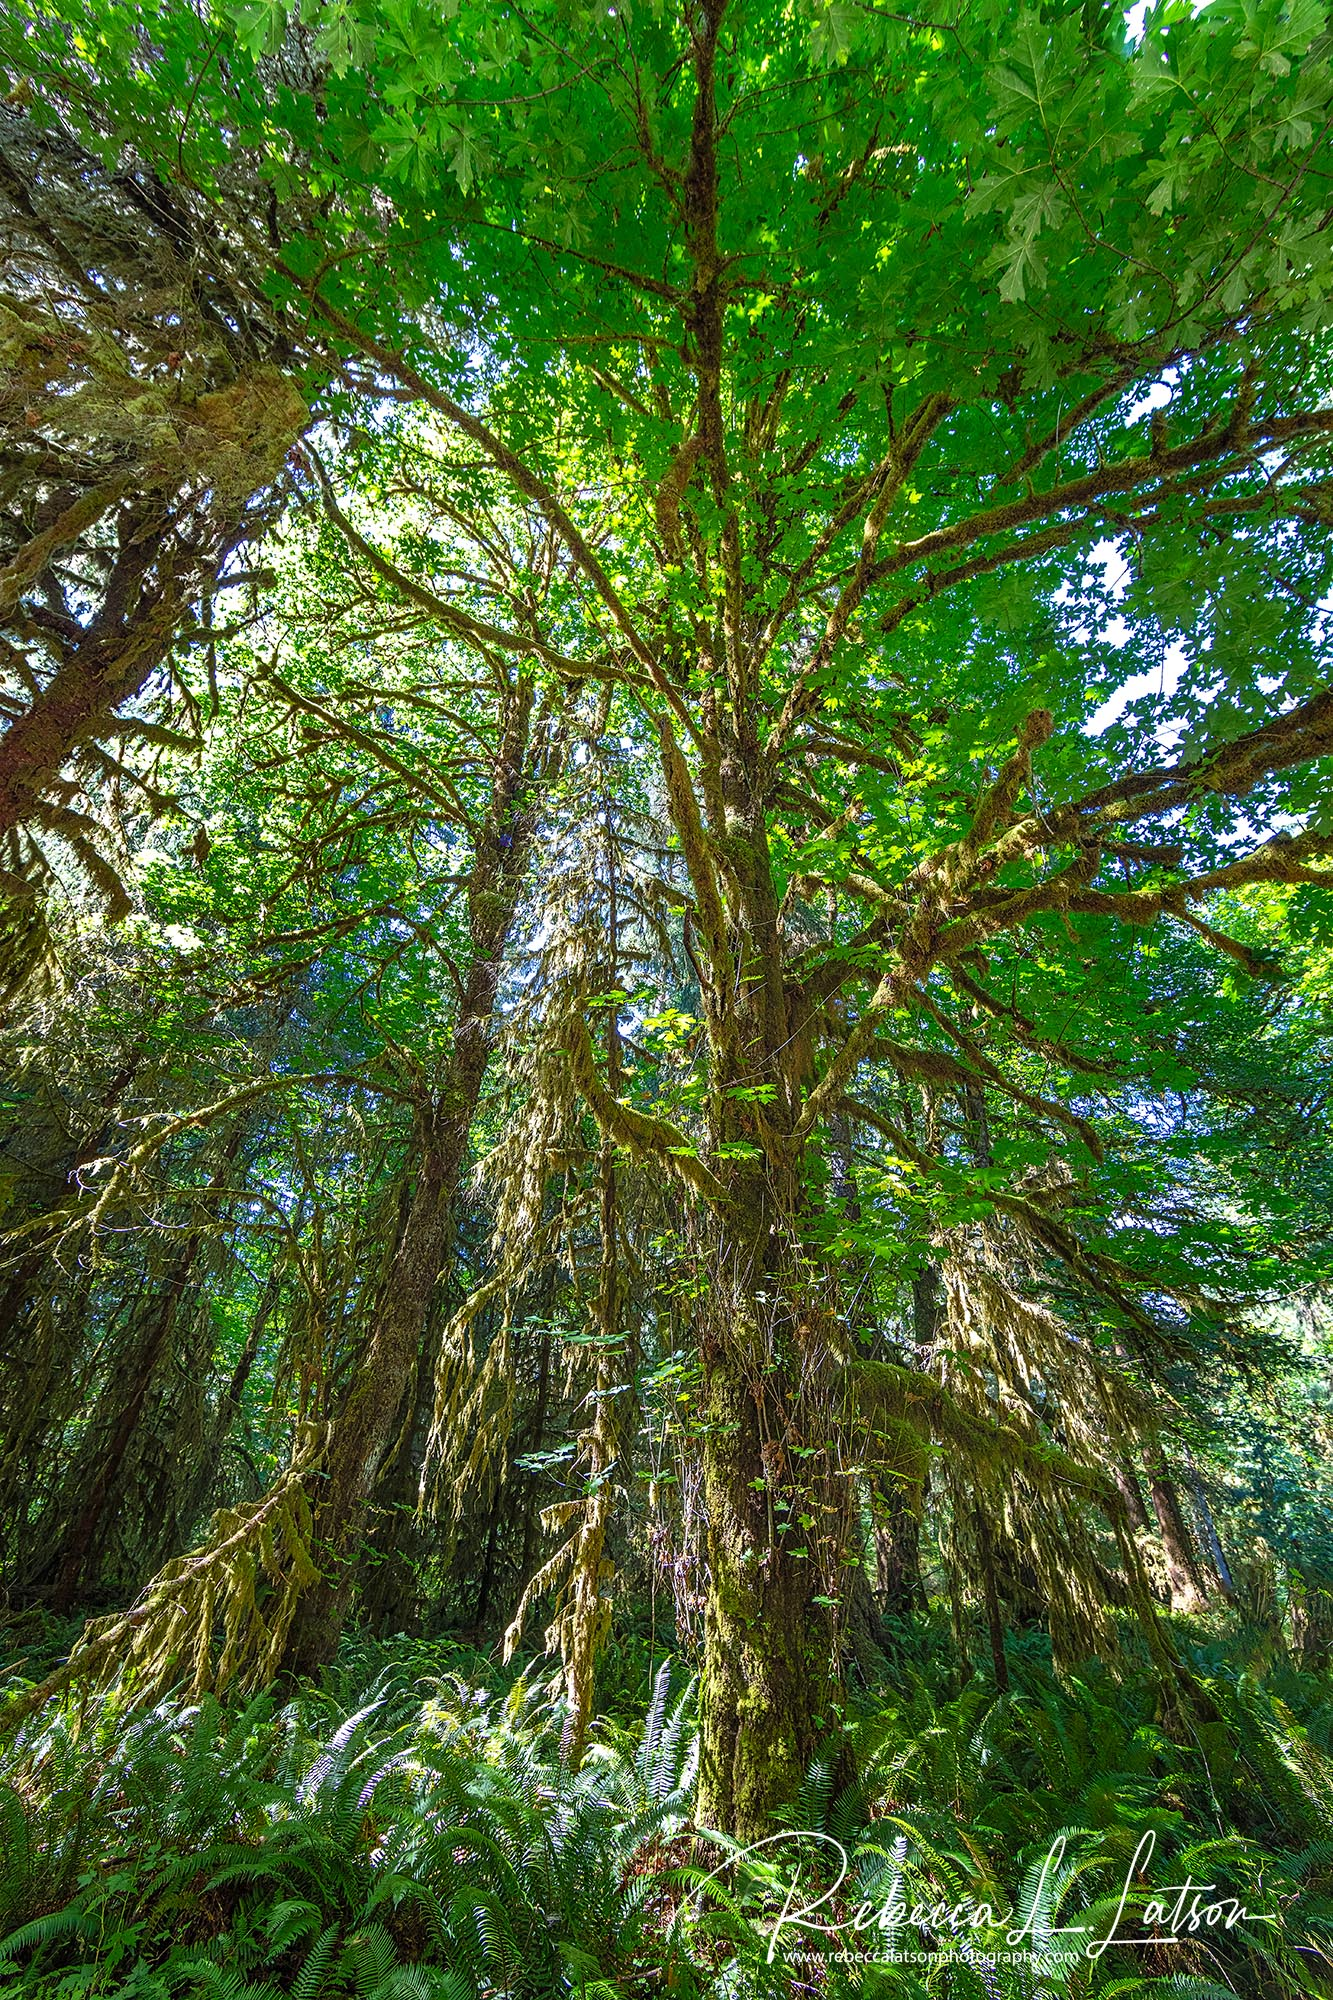 Hoh Rain Forest Scenery